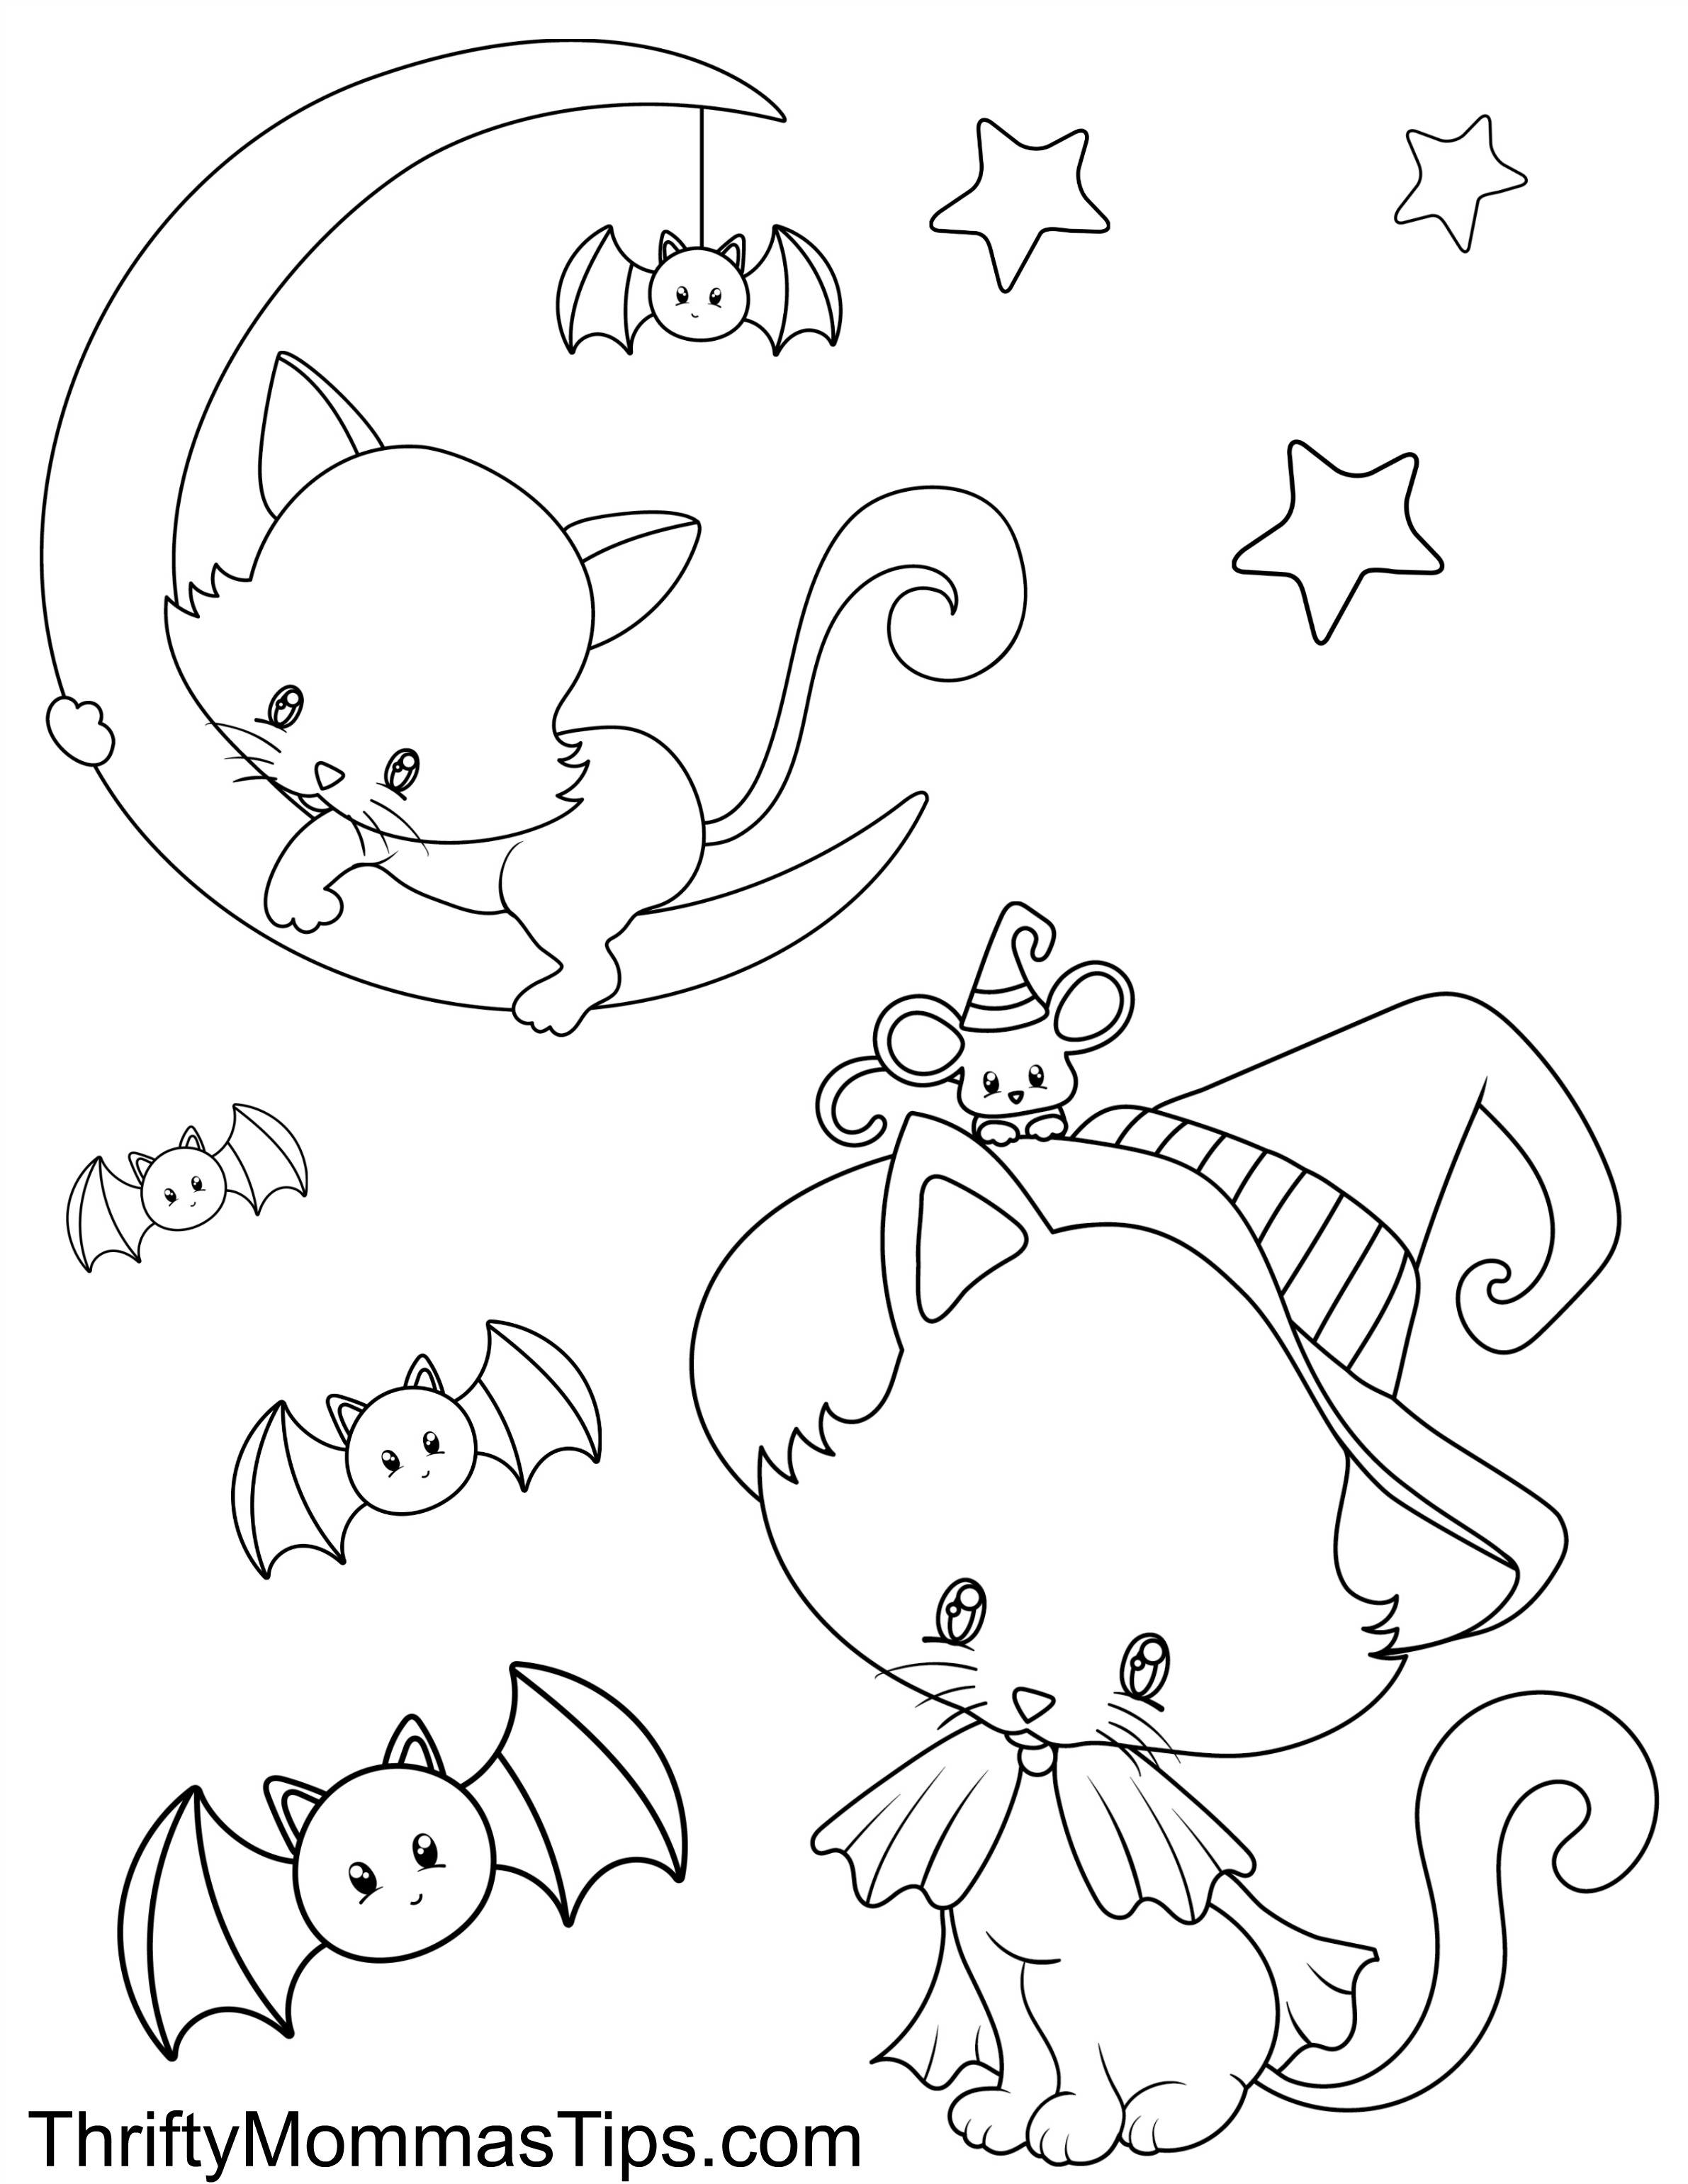 halloween cat coloring pages halloween coloring pages boo cat coloring print color craft cat pages coloring halloween